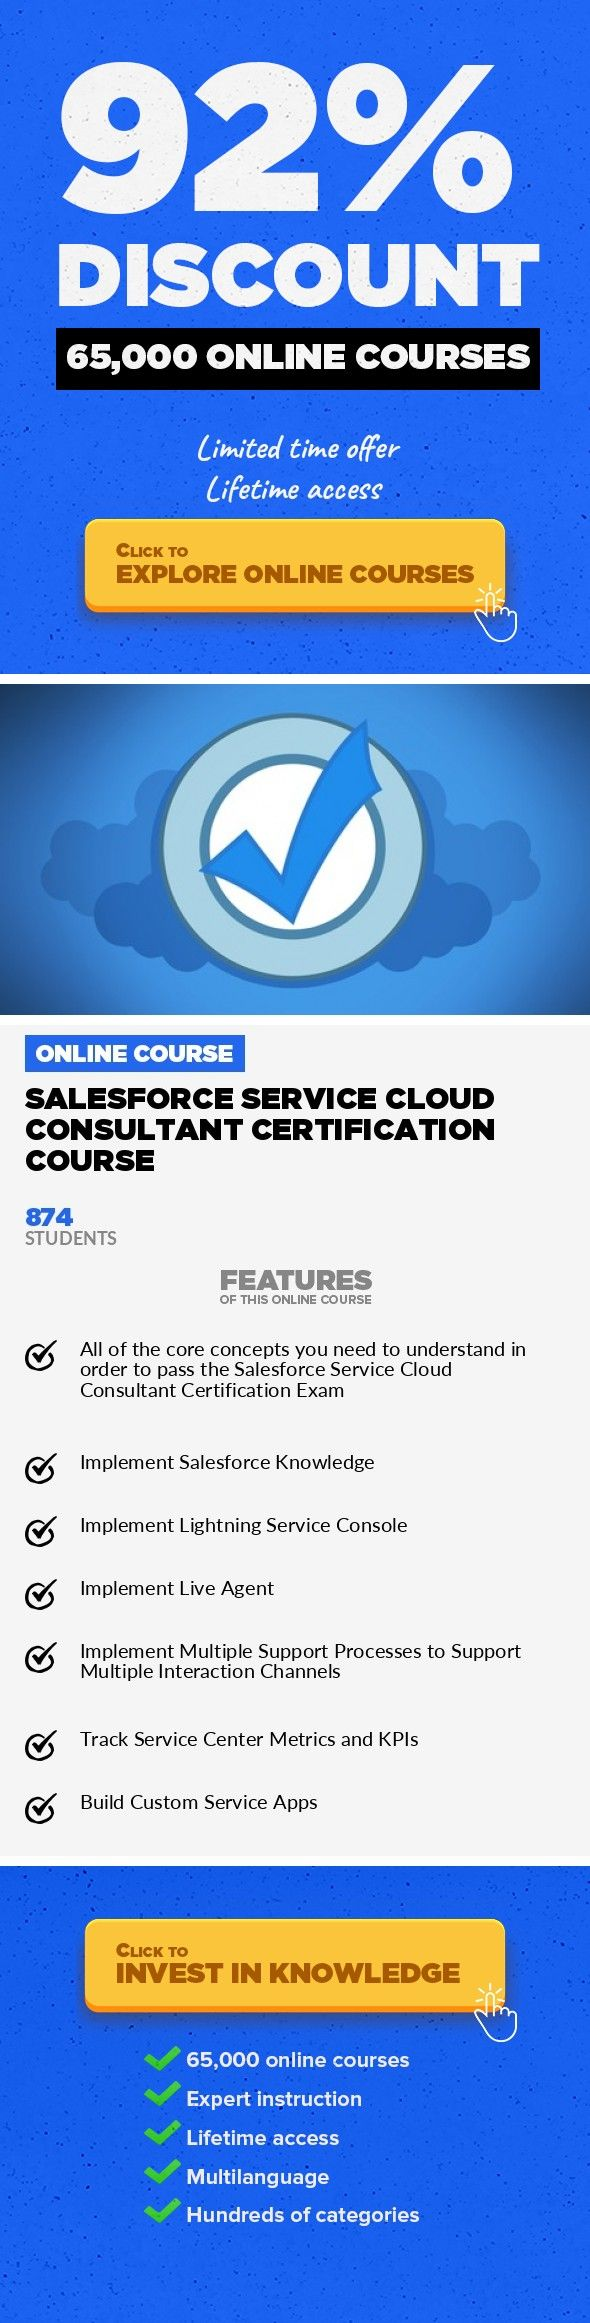 Salesforce Service Cloud Consultant Certification Course It